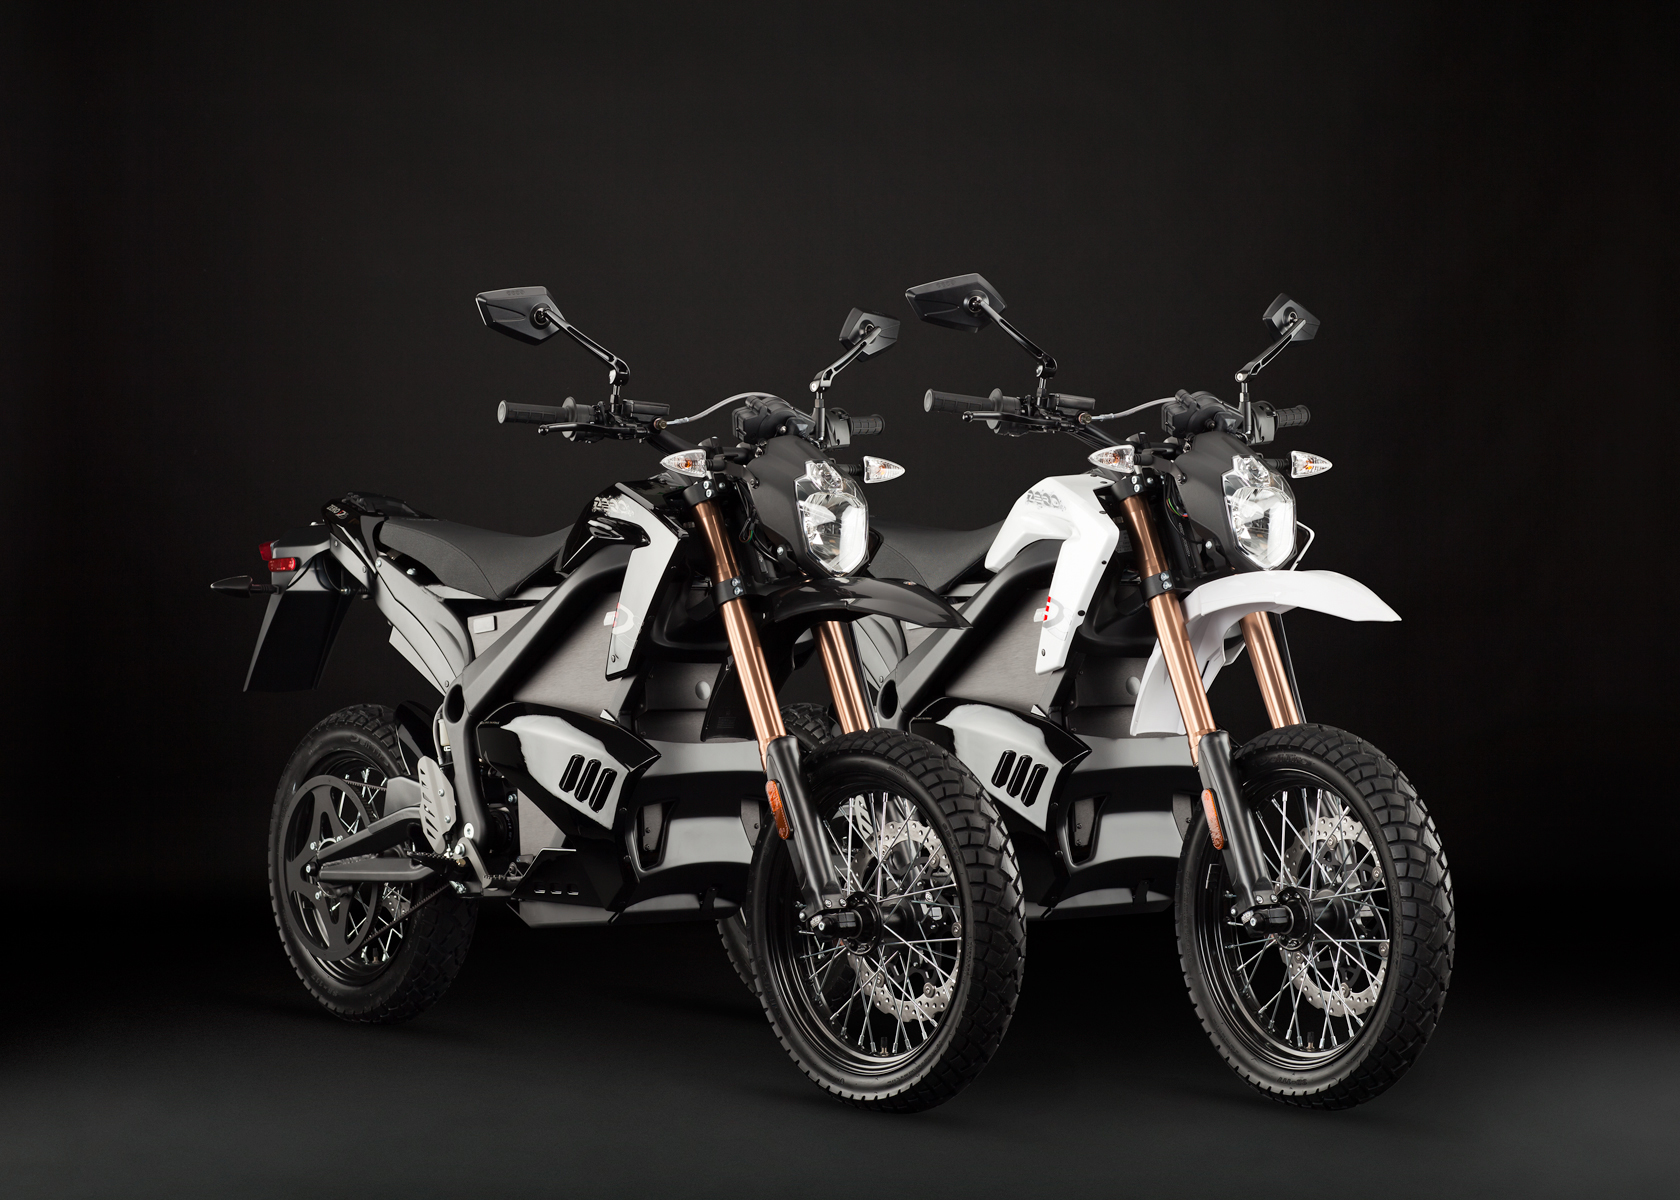 2012 Zero DS Electric Motorcycle: Pair, White and Black